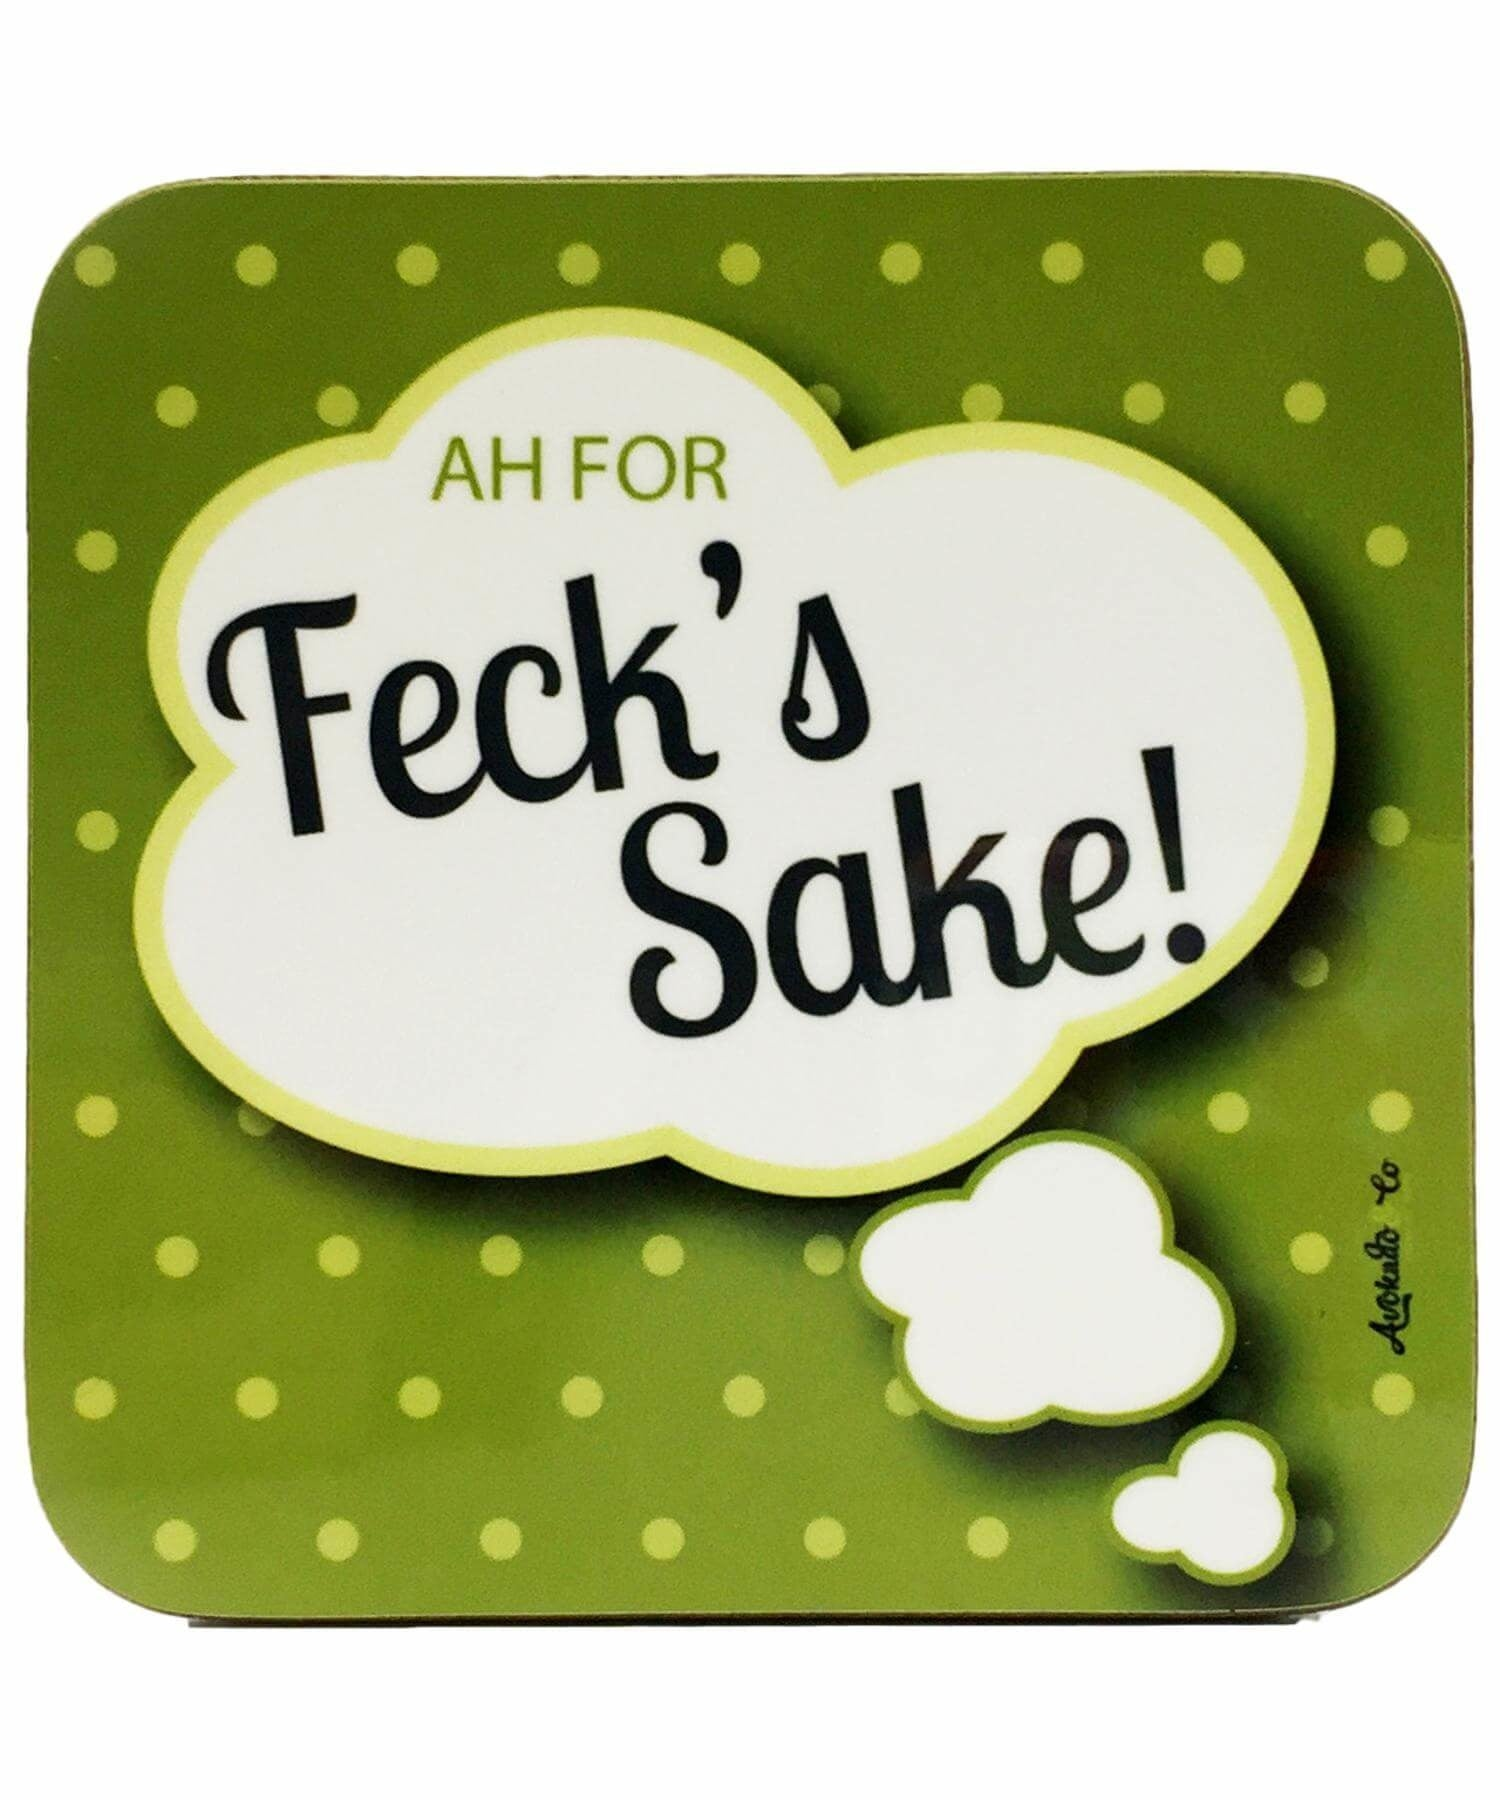 Irish Saying Coaster - Ah For Feck Sake Avokado & Co Souvenir